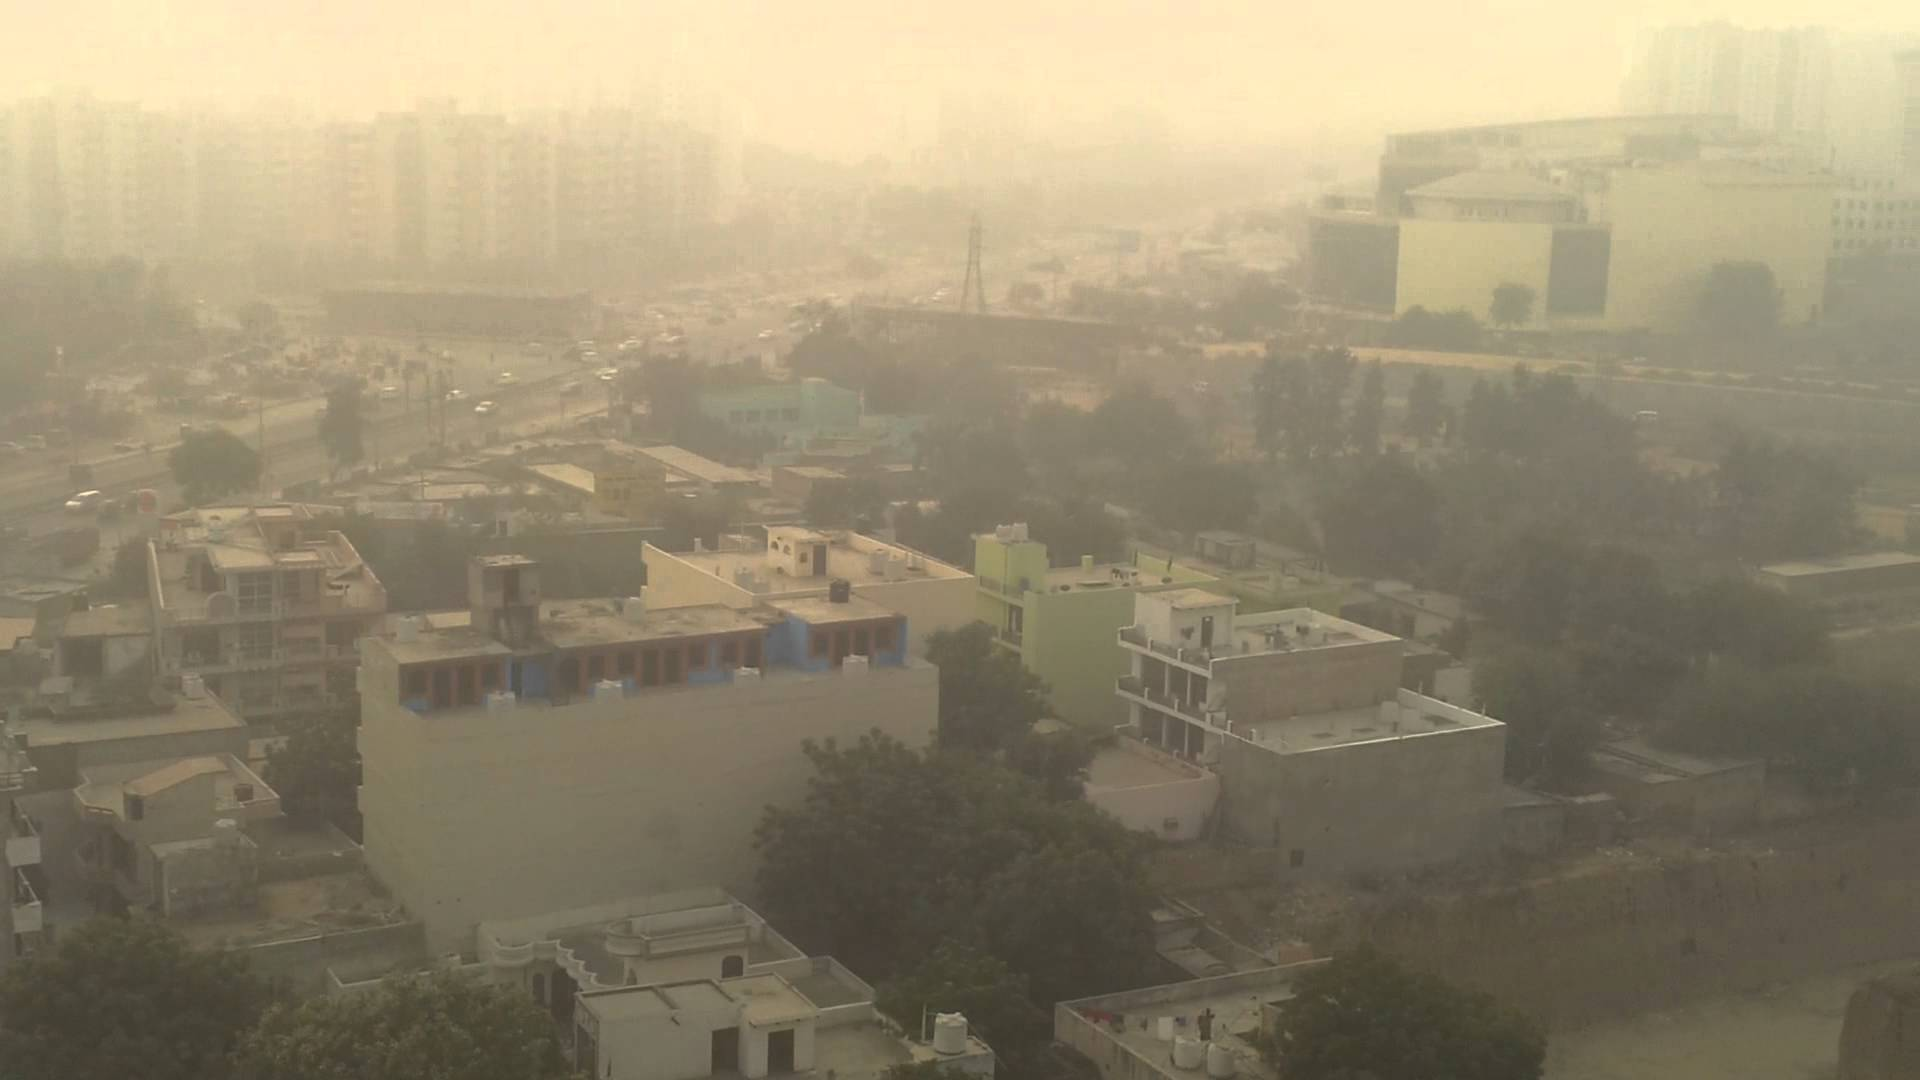 Haryana-Pollution-Board-issues-five-point-agenda-fight-bad-air